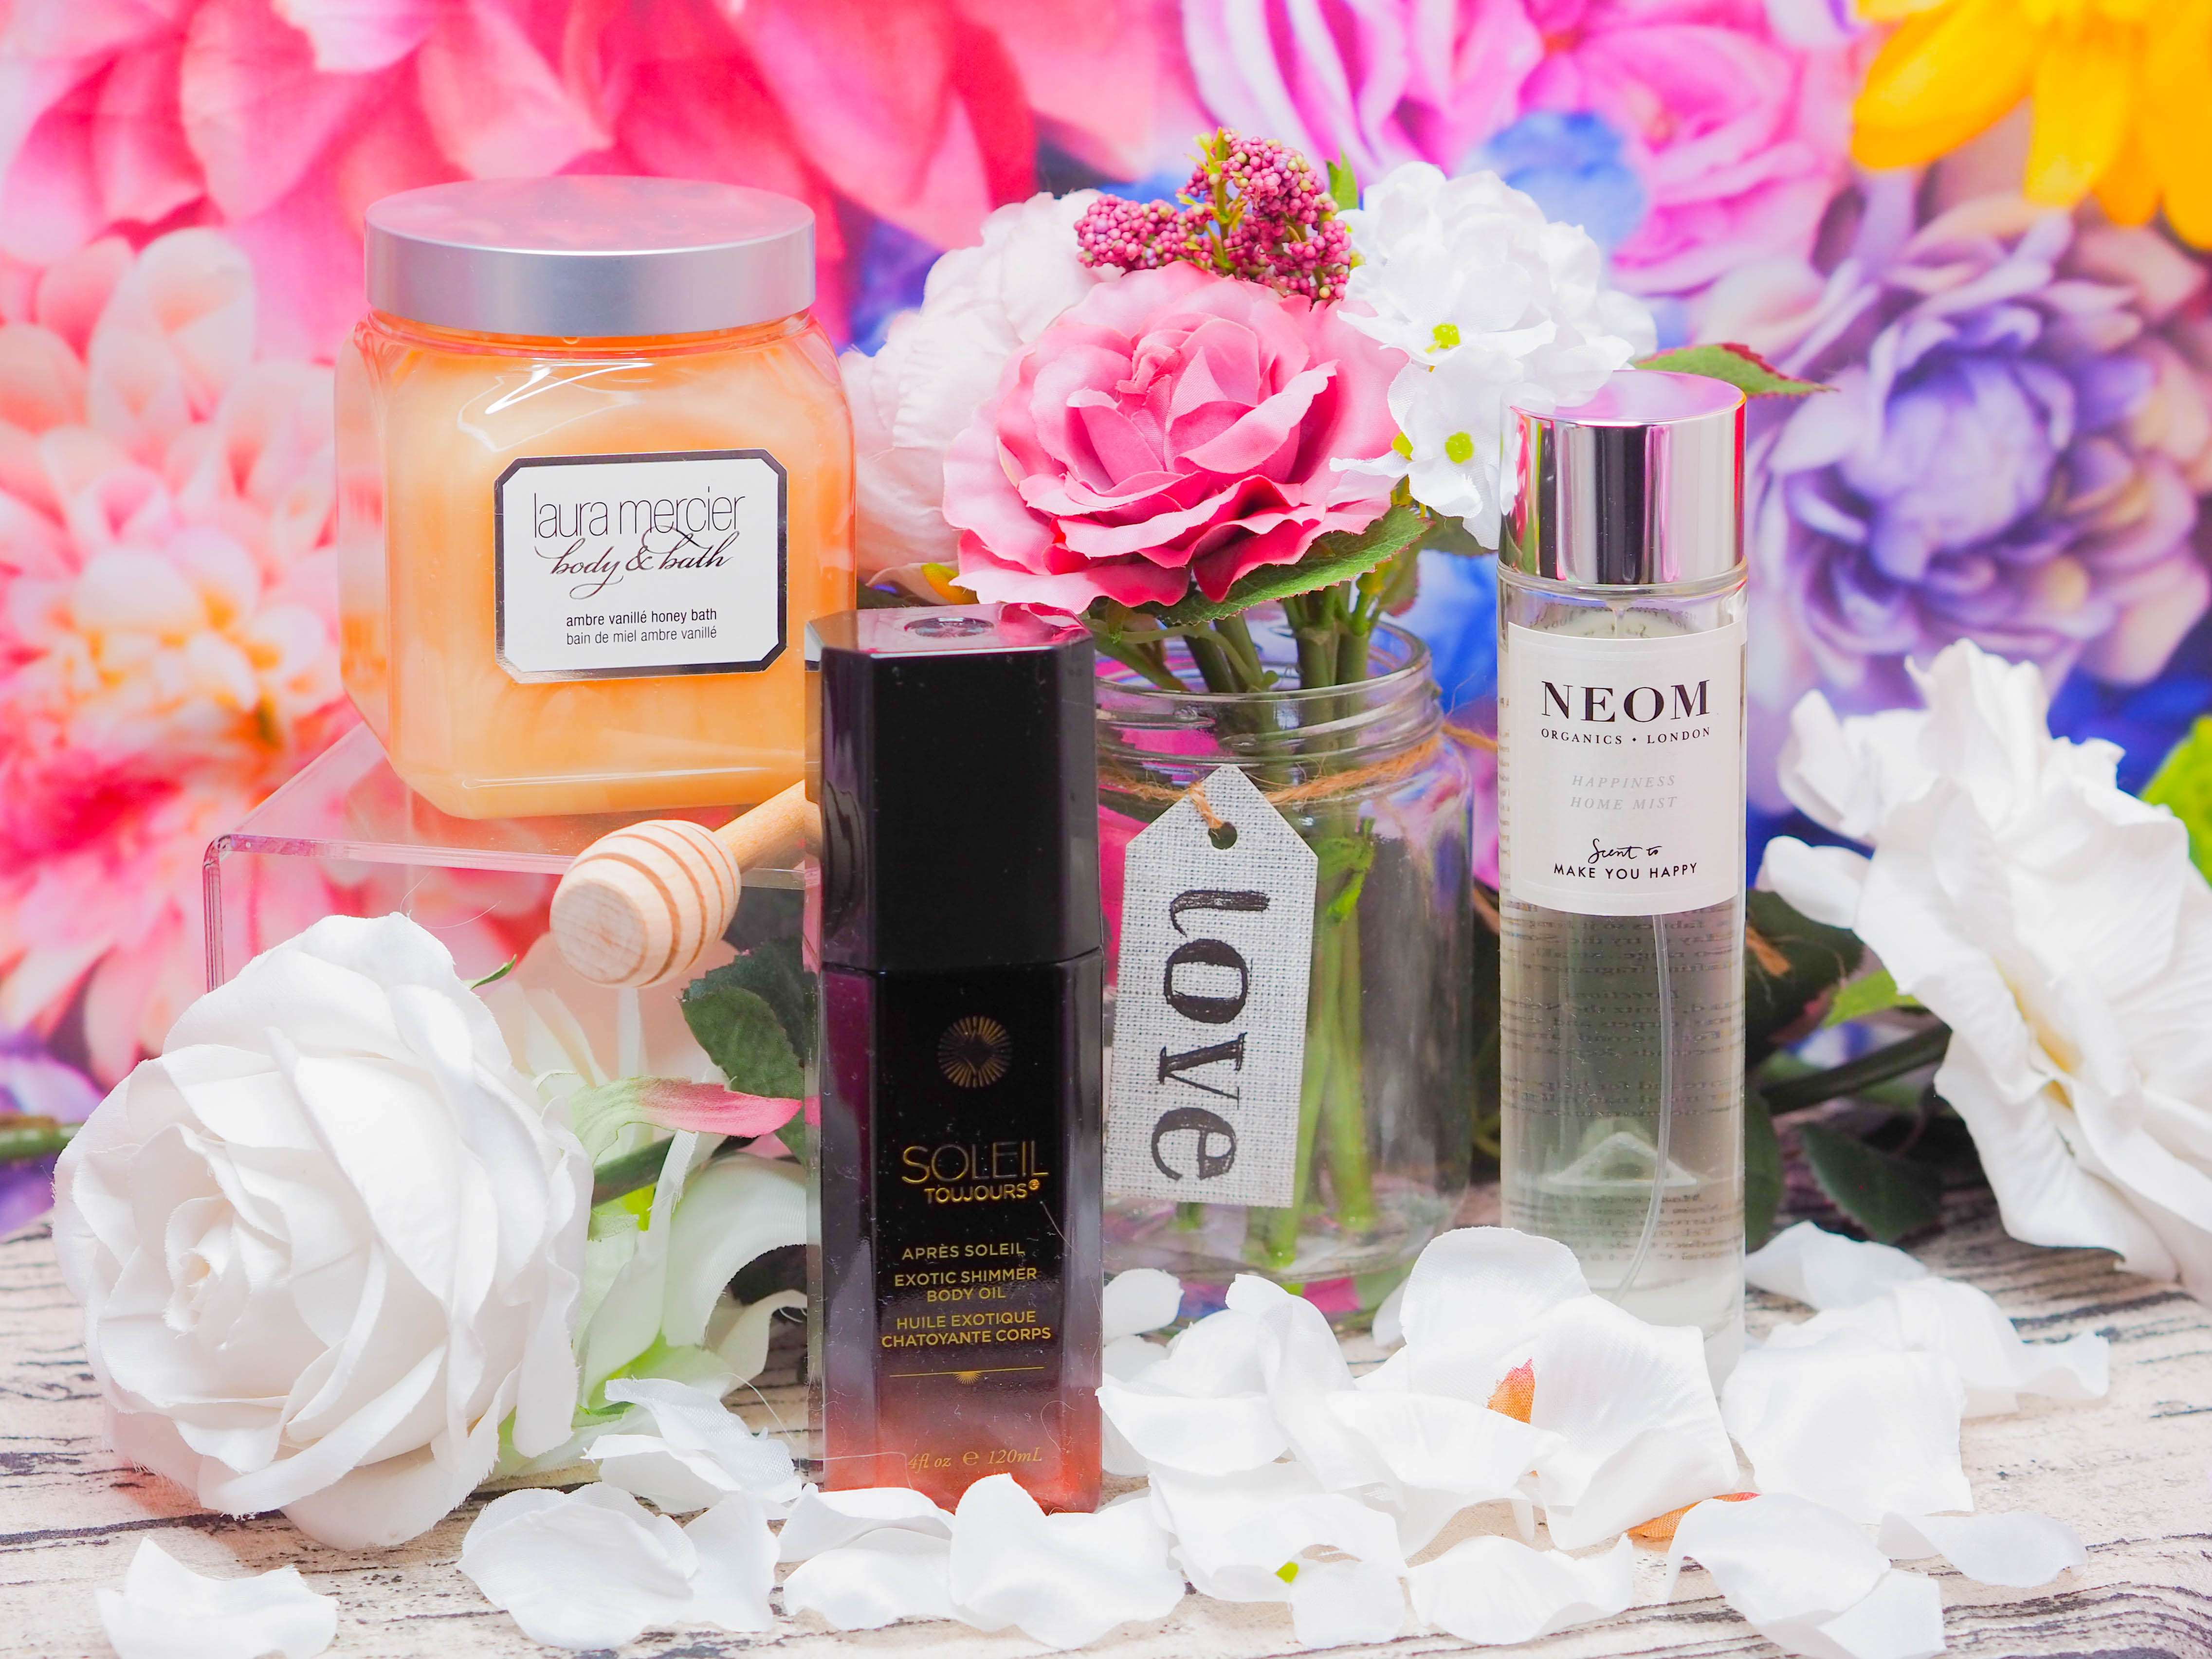 Three luxury beauty products from Laura Mercier, Neom and Soleil Toujours